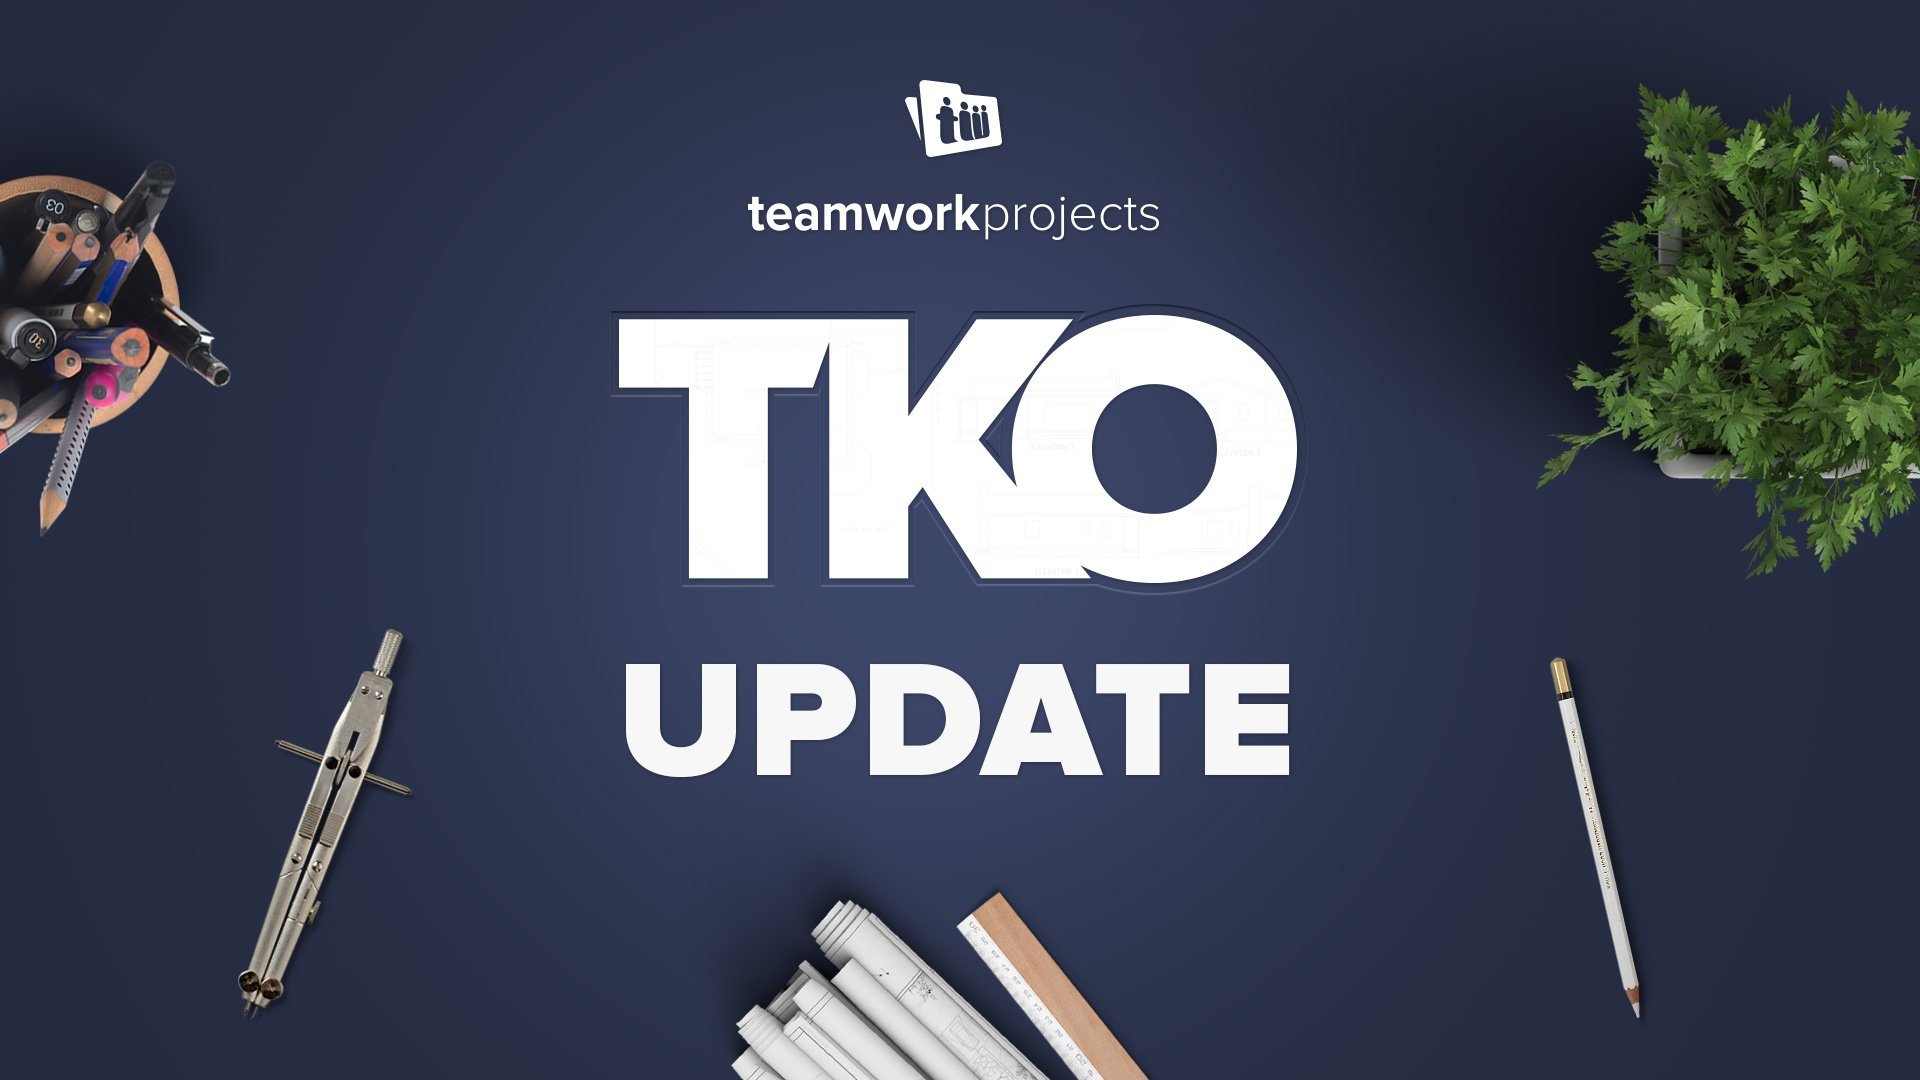 What's New with Teamwork Projects TKO